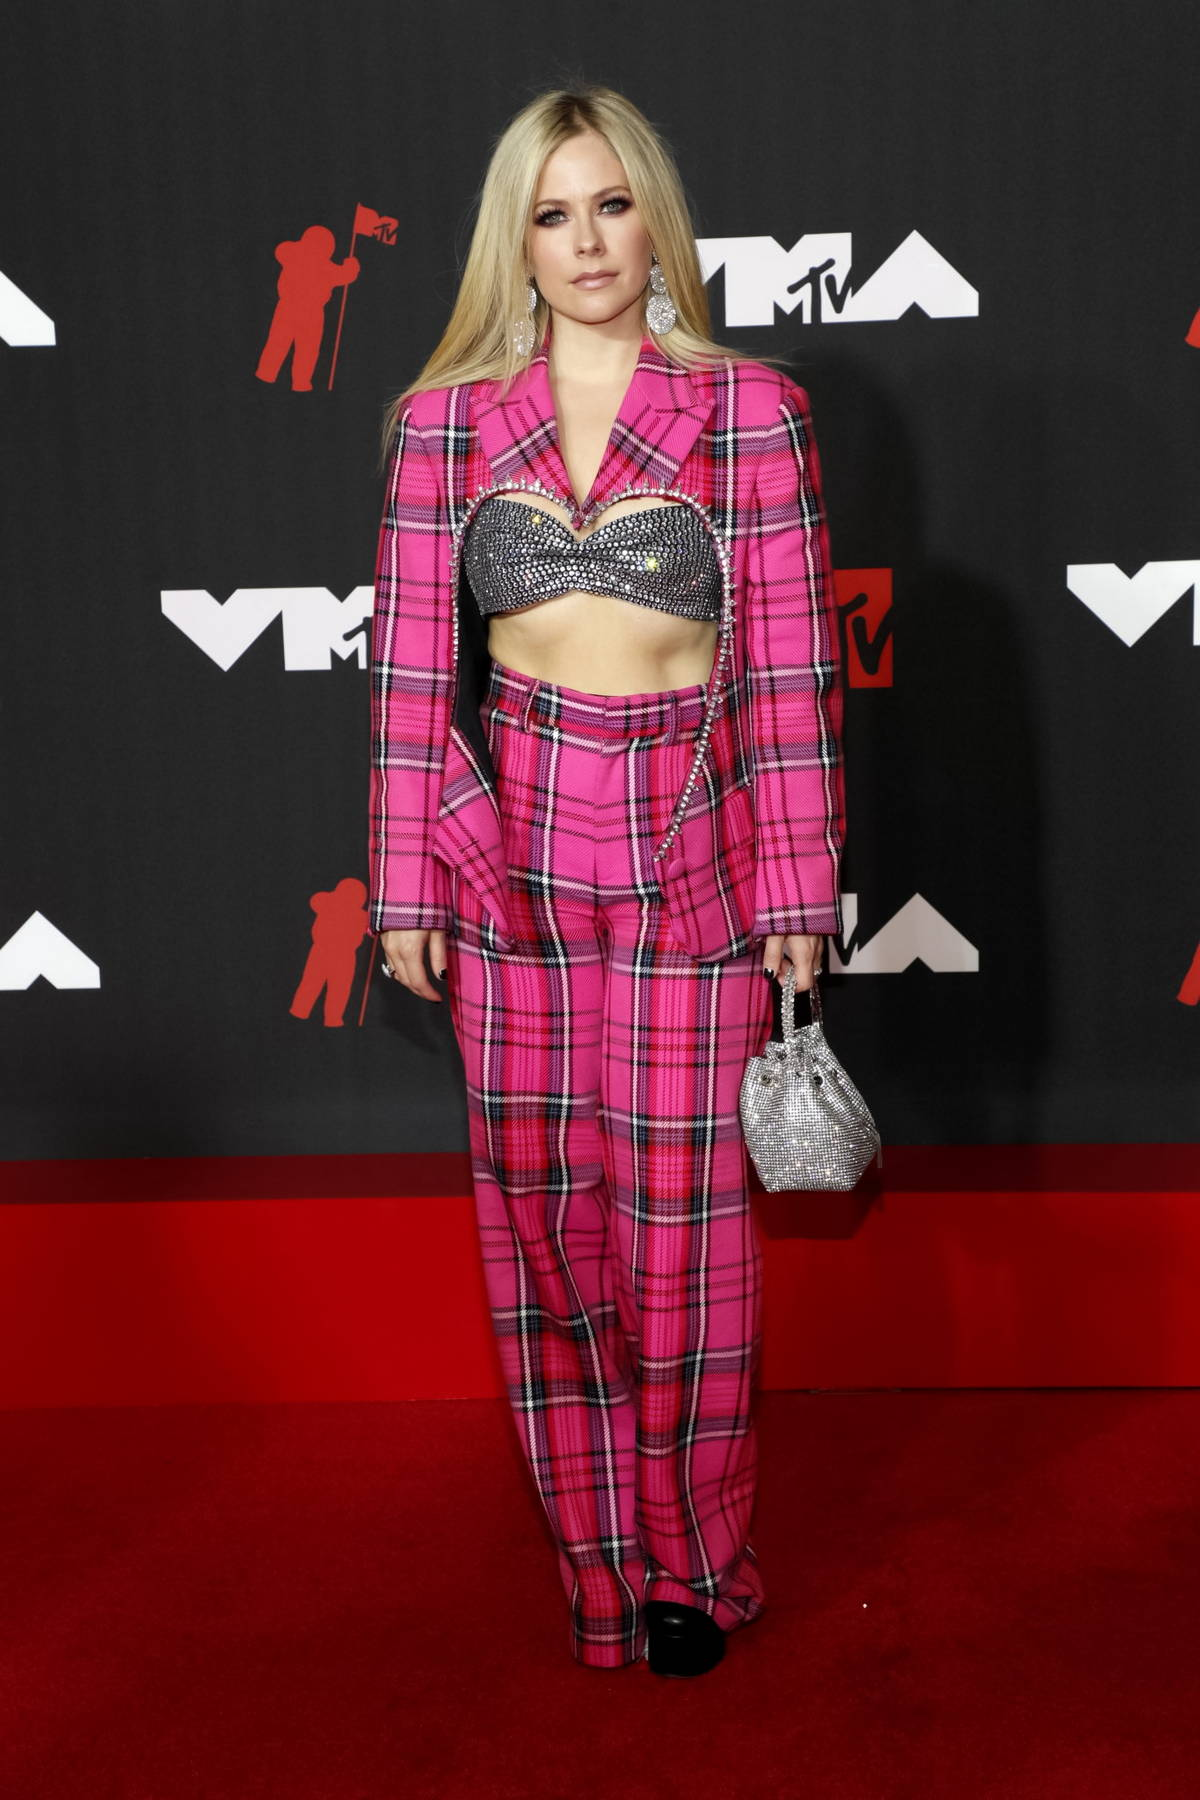 Avril Lavigne attends the 2021 MTV Video Music Awards at Barclays Center in Brooklyn, New York City